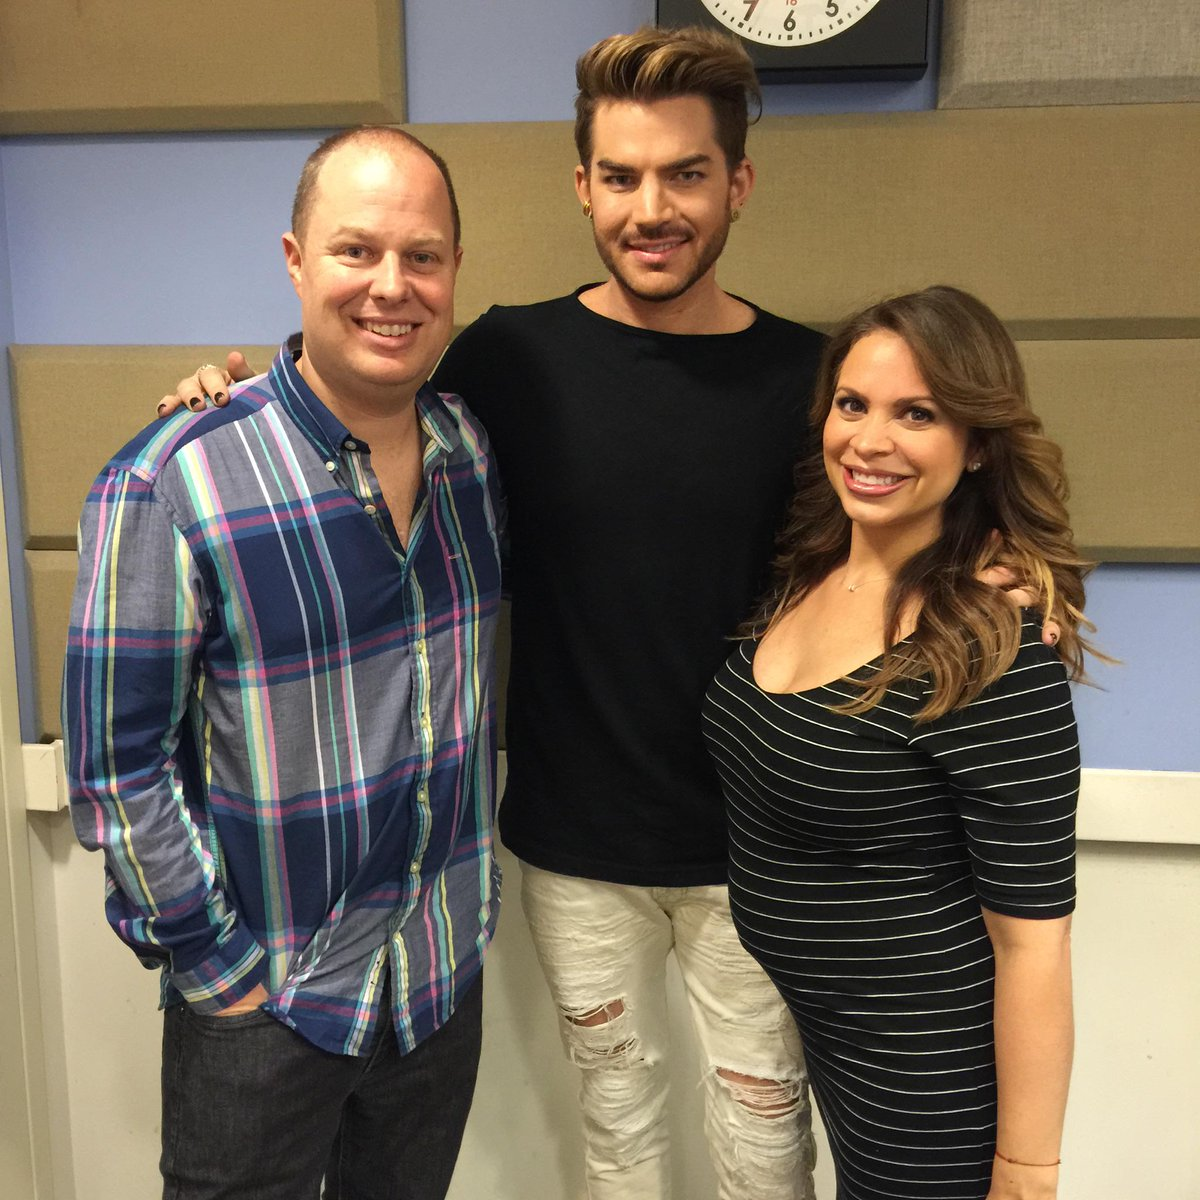 Thank You @adamlambert for hanging out with me and @TheRealCarolina see you at #KTUphoria http://t.co/dUPgQ9okqz